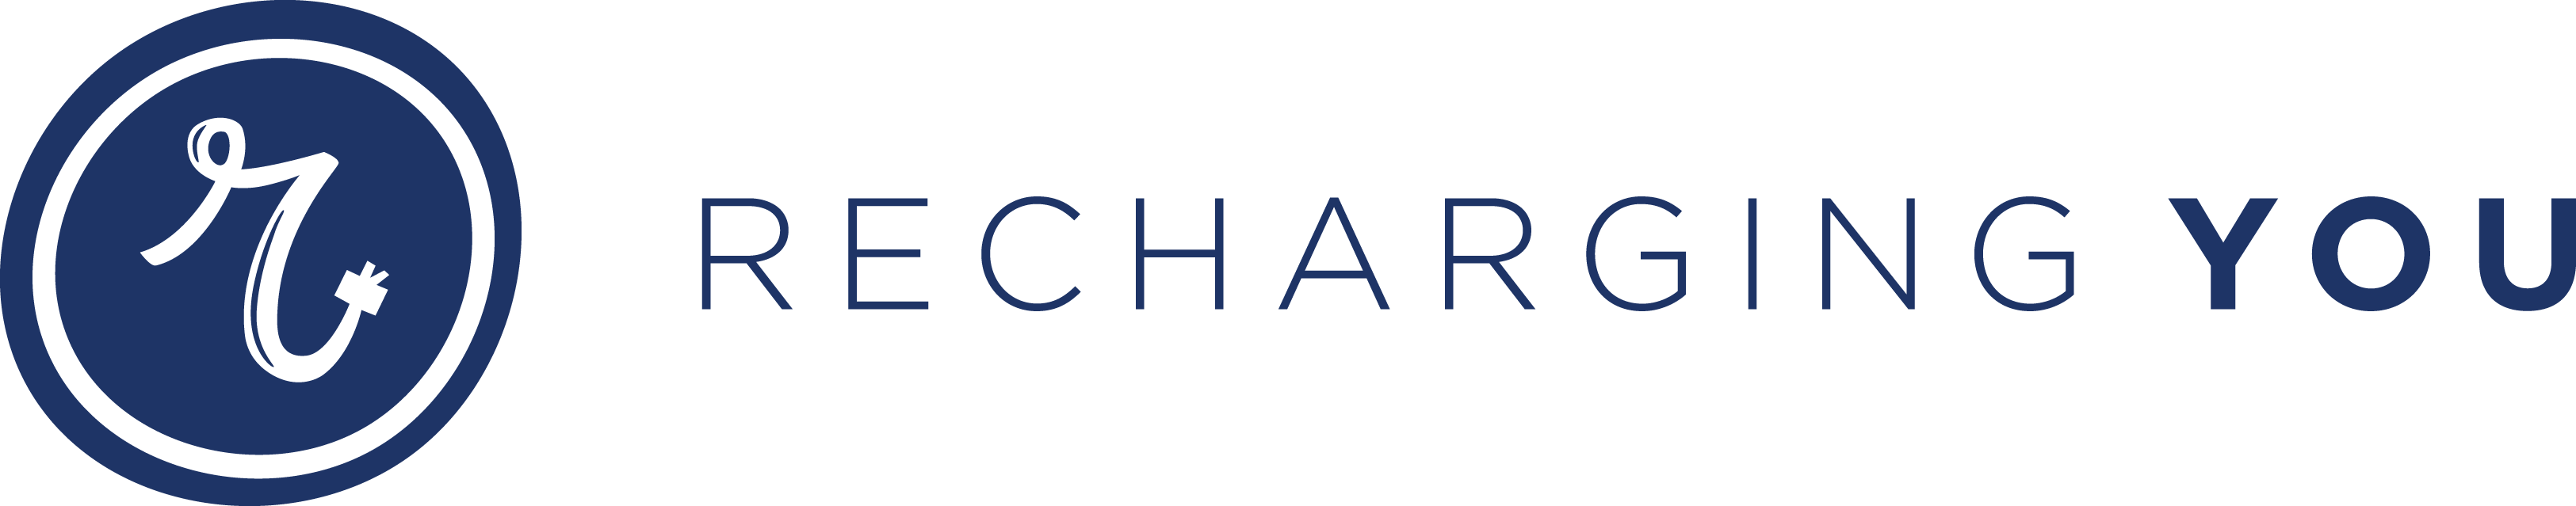 cropped-recharging-you-logo-horizontal-0719-navyF.png